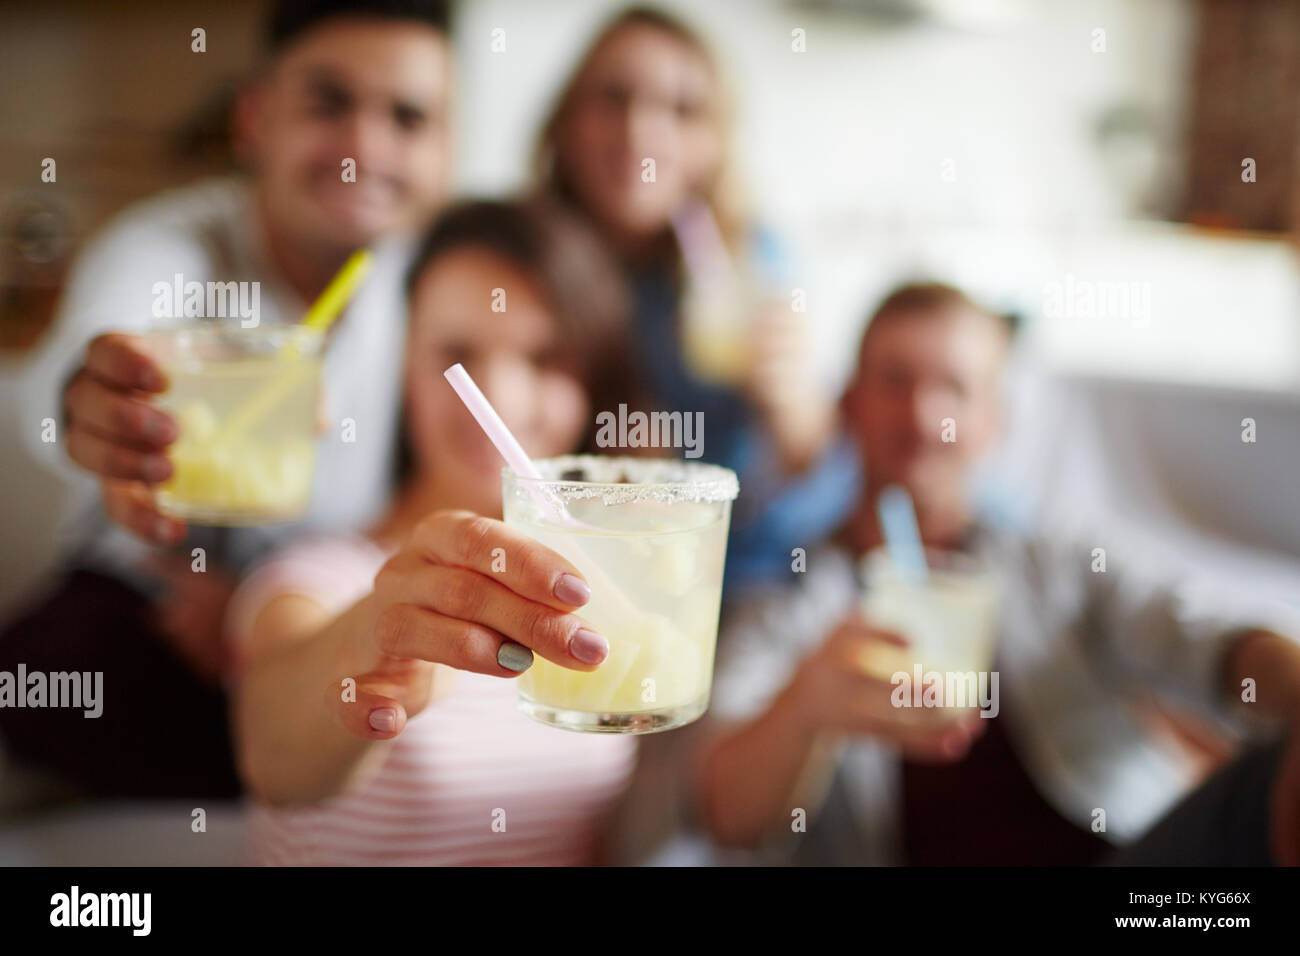 Cool drink - Stock Image